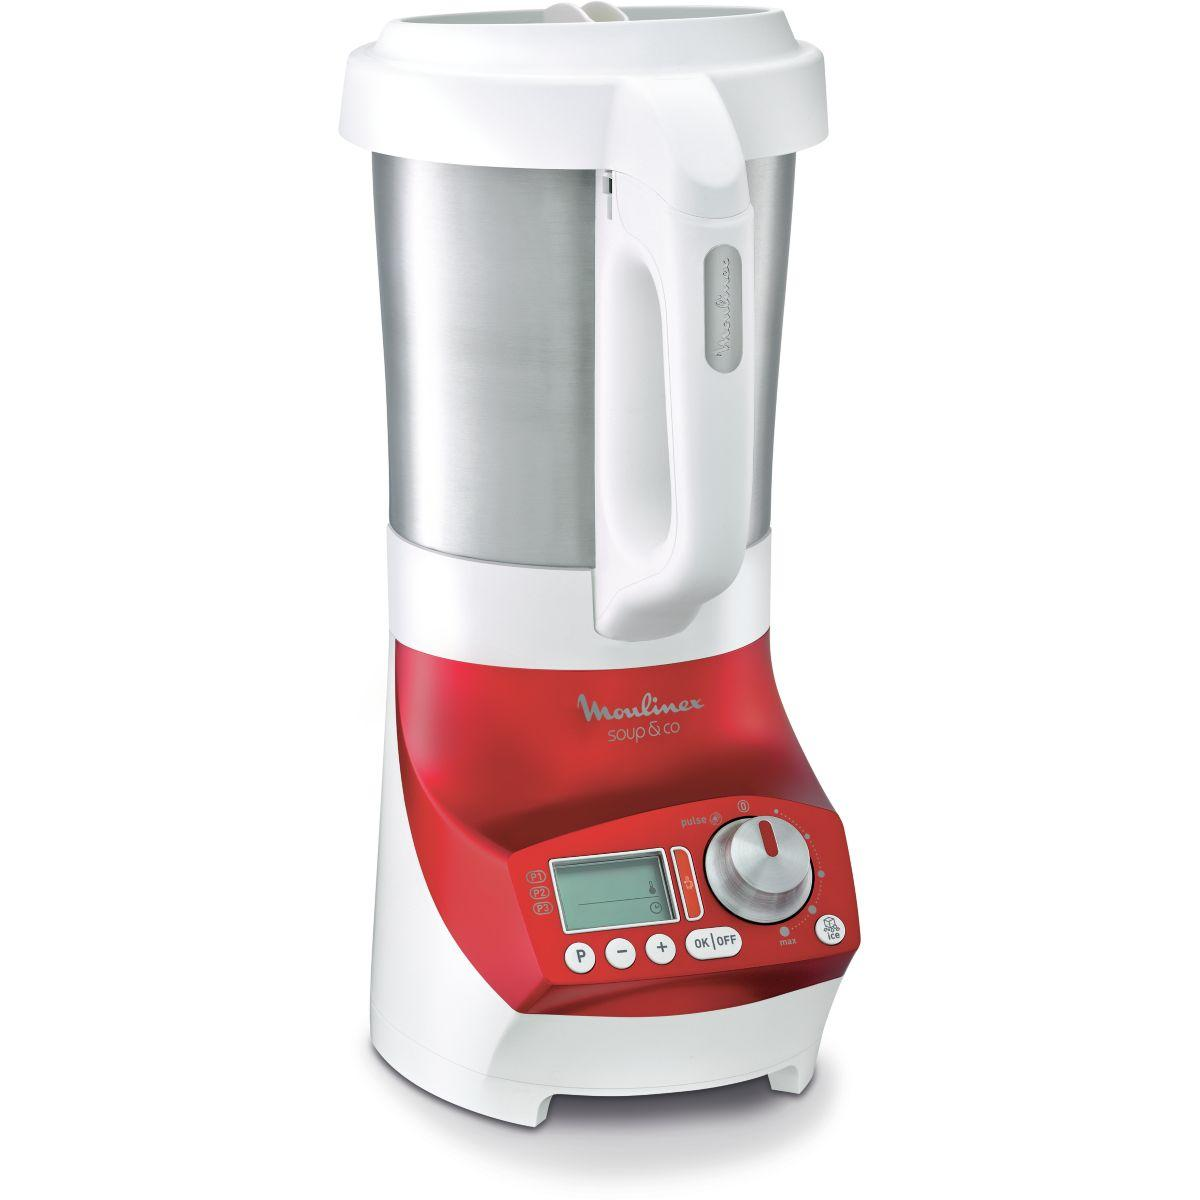 Blender chauffant moulinex soup & co lm906110 2l rouge